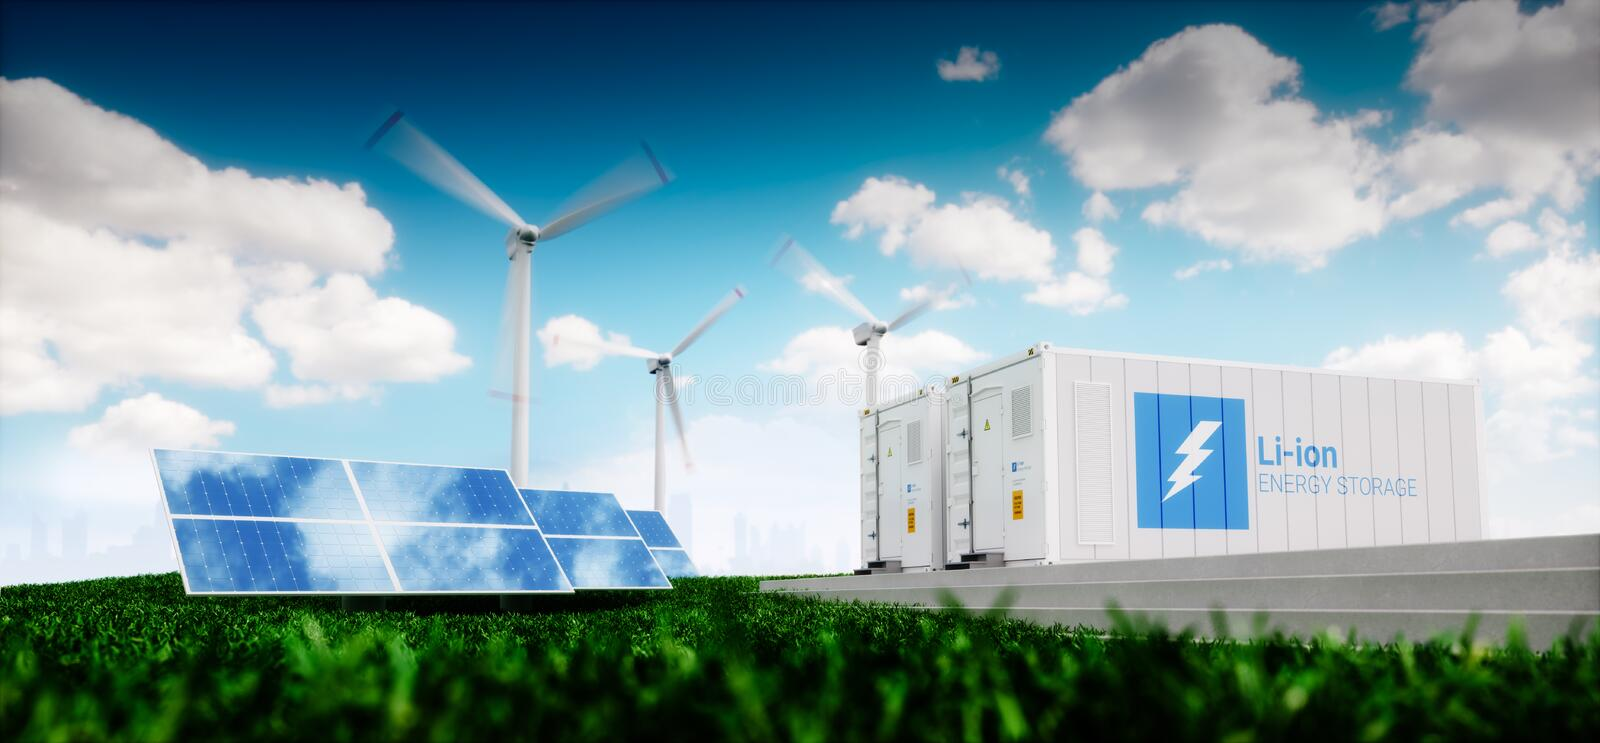 Concept of energy storage system. vector illustration